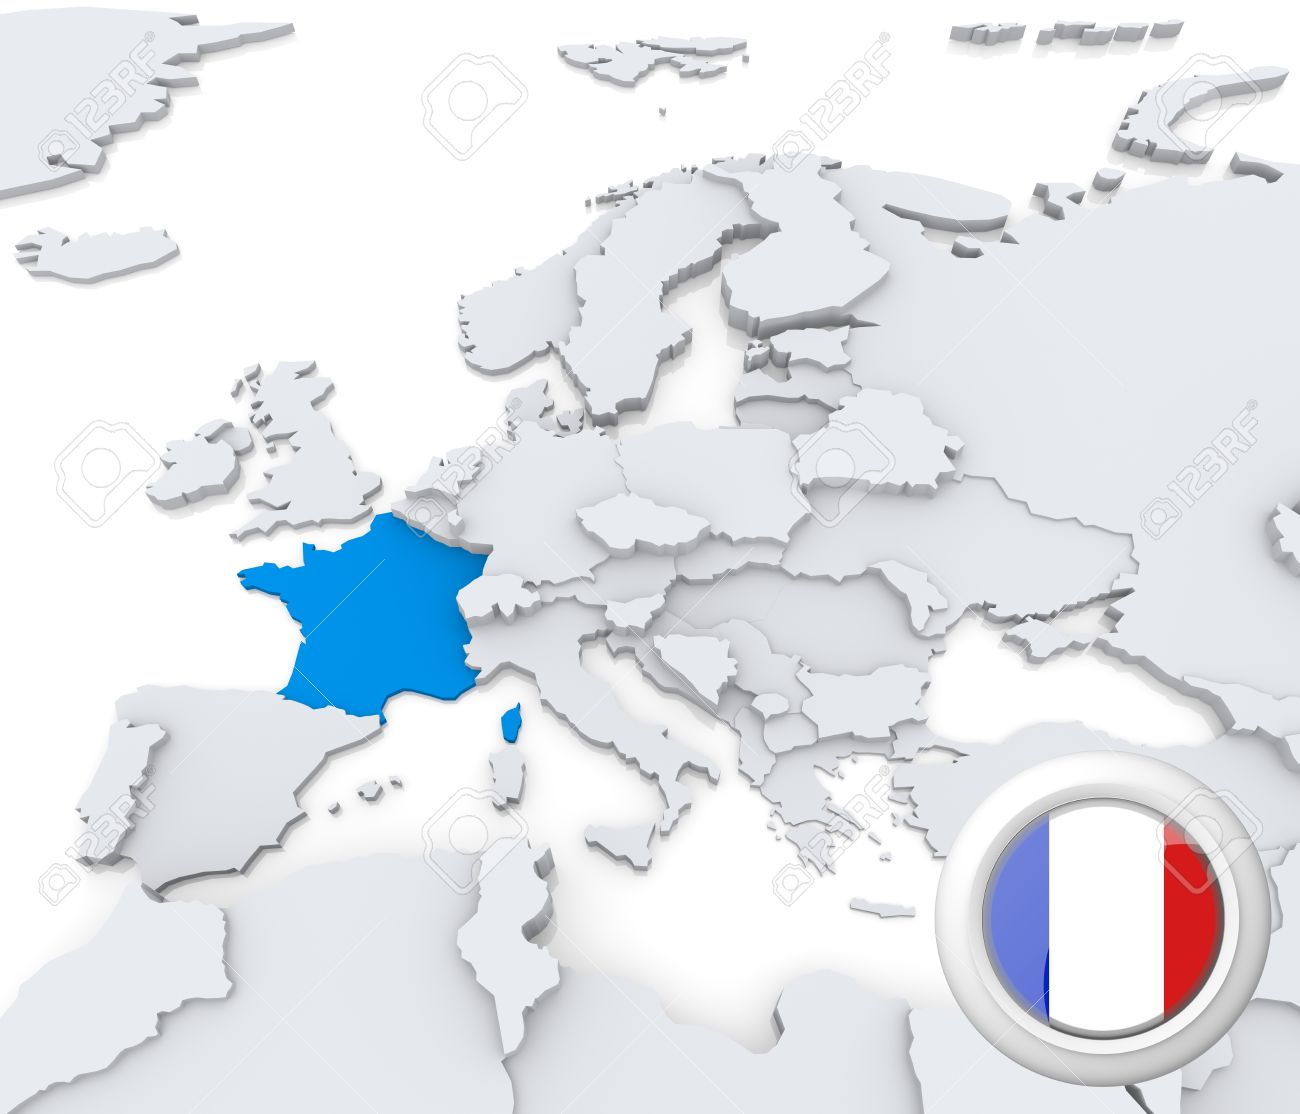 Map Of Europe With France Highlighted.Highlighted France On Map Of Europe With National Flag